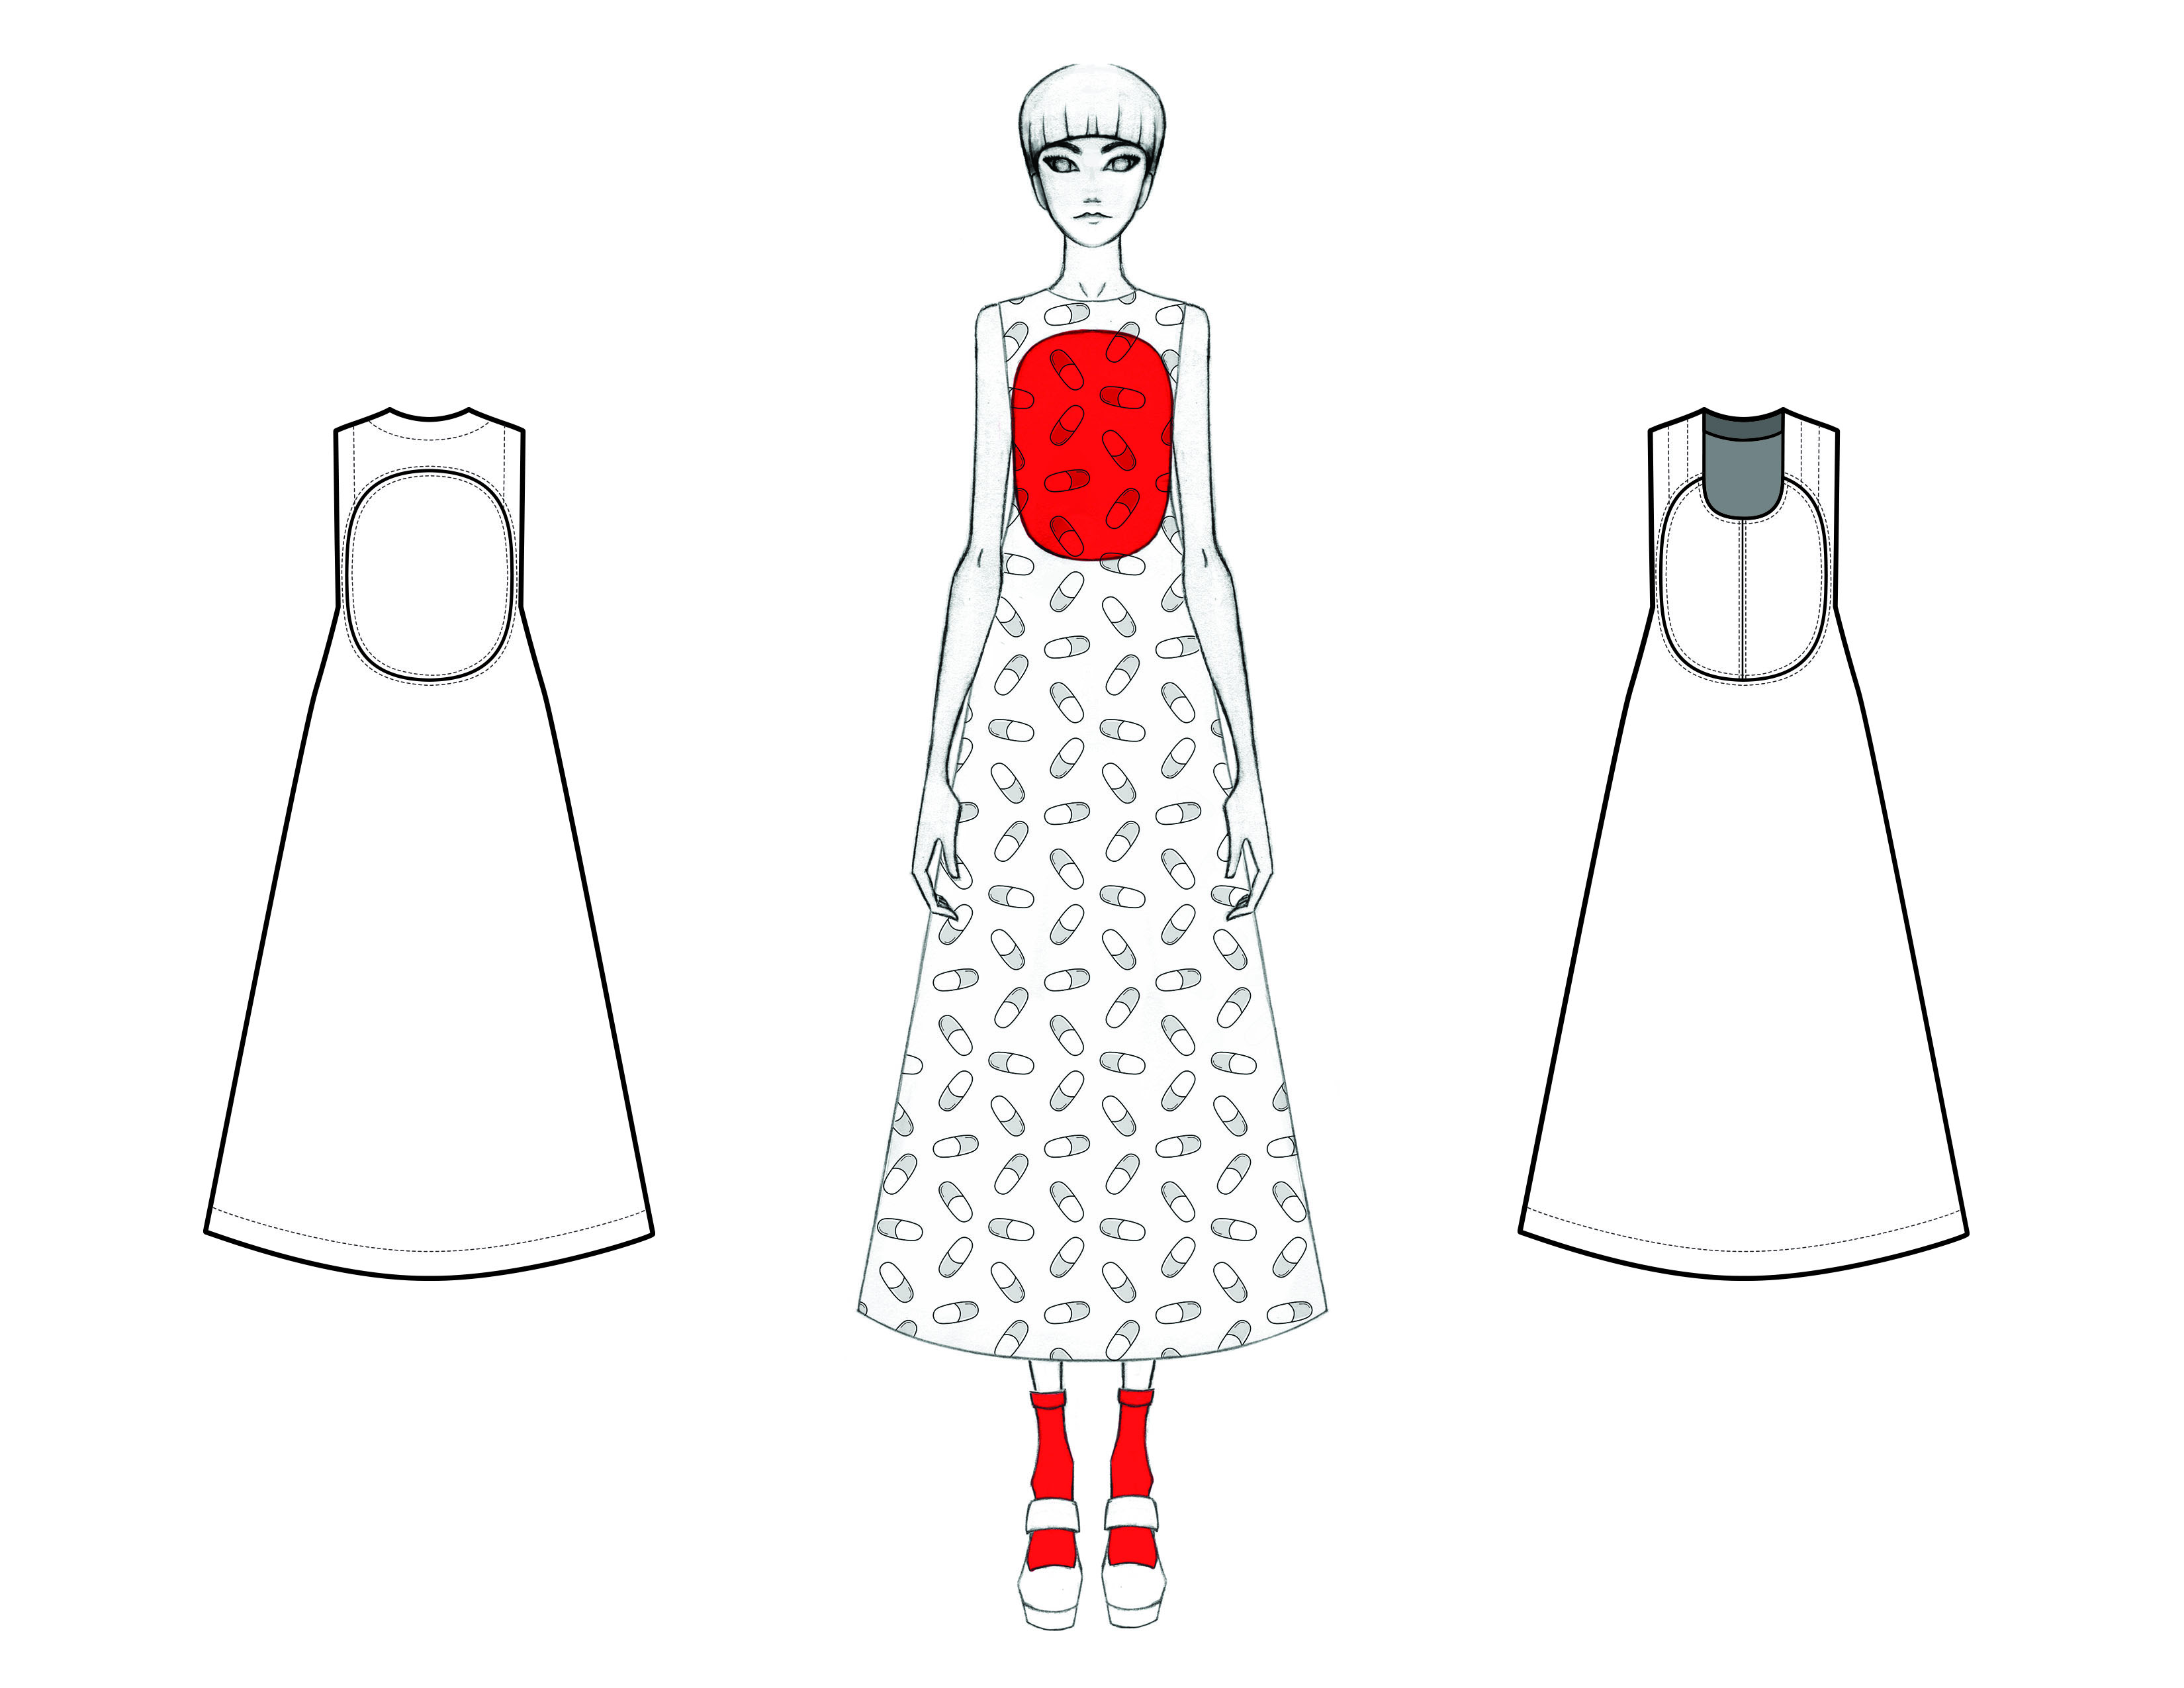 MGHN Capsule Look 6 Illustration and Flats